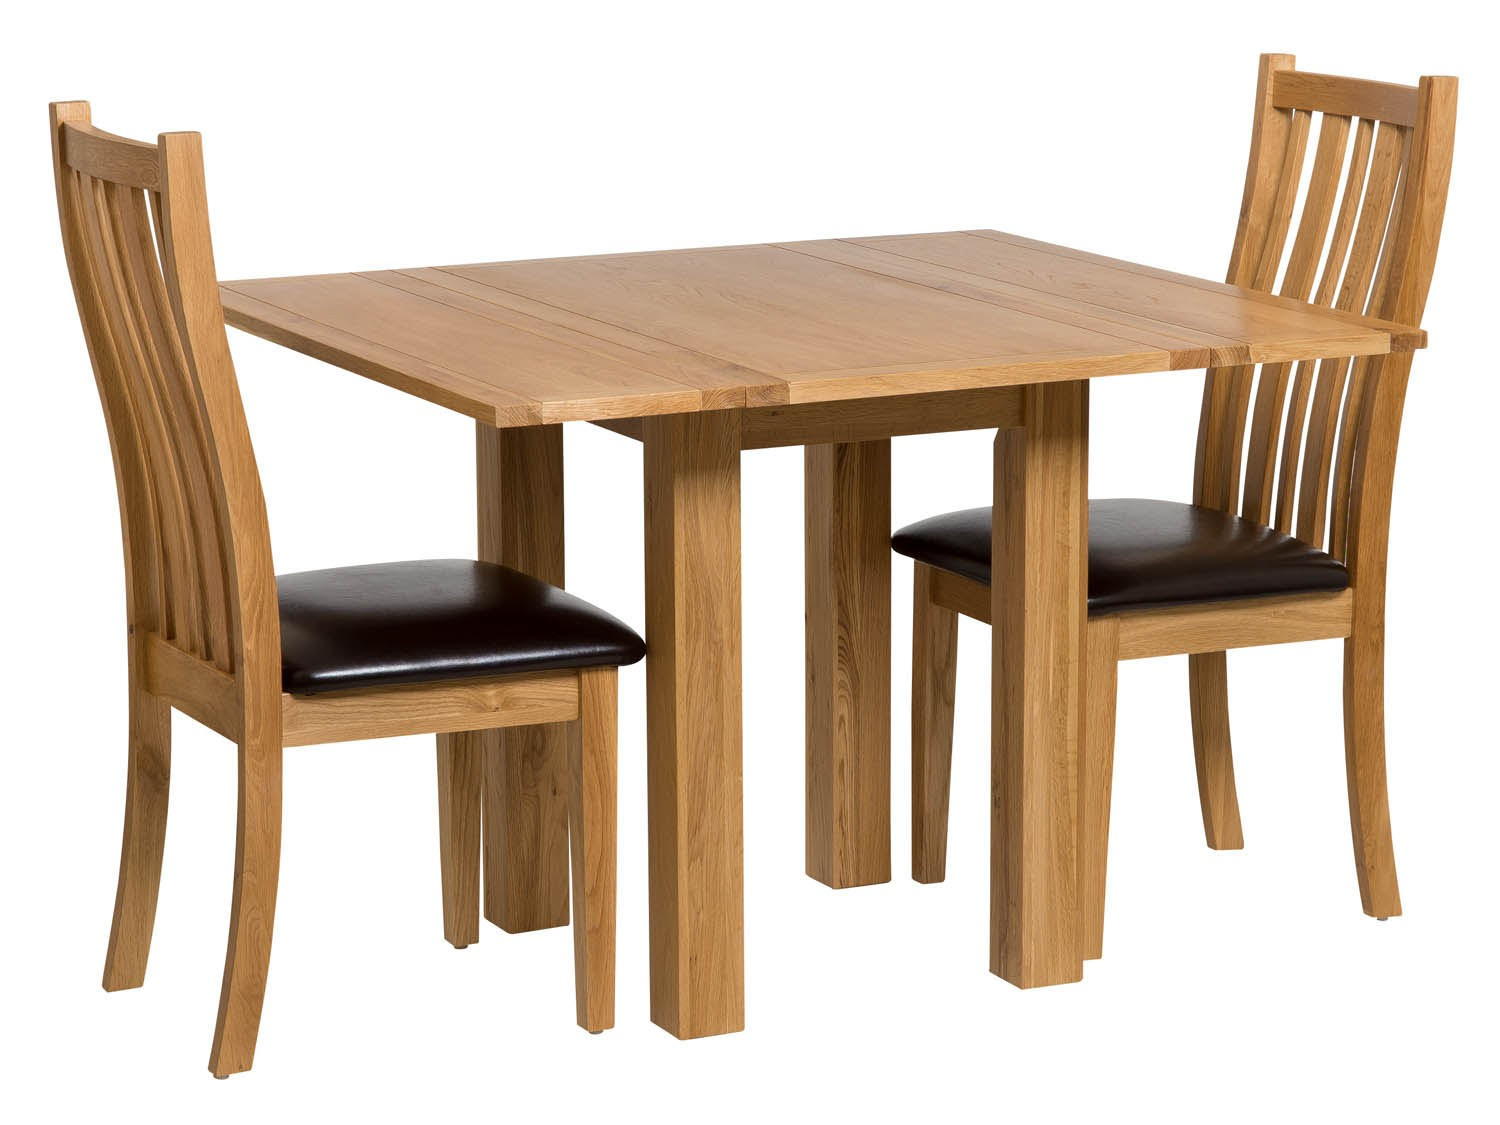 Waverly oak small extending table with folding leaves for Folding dining room table